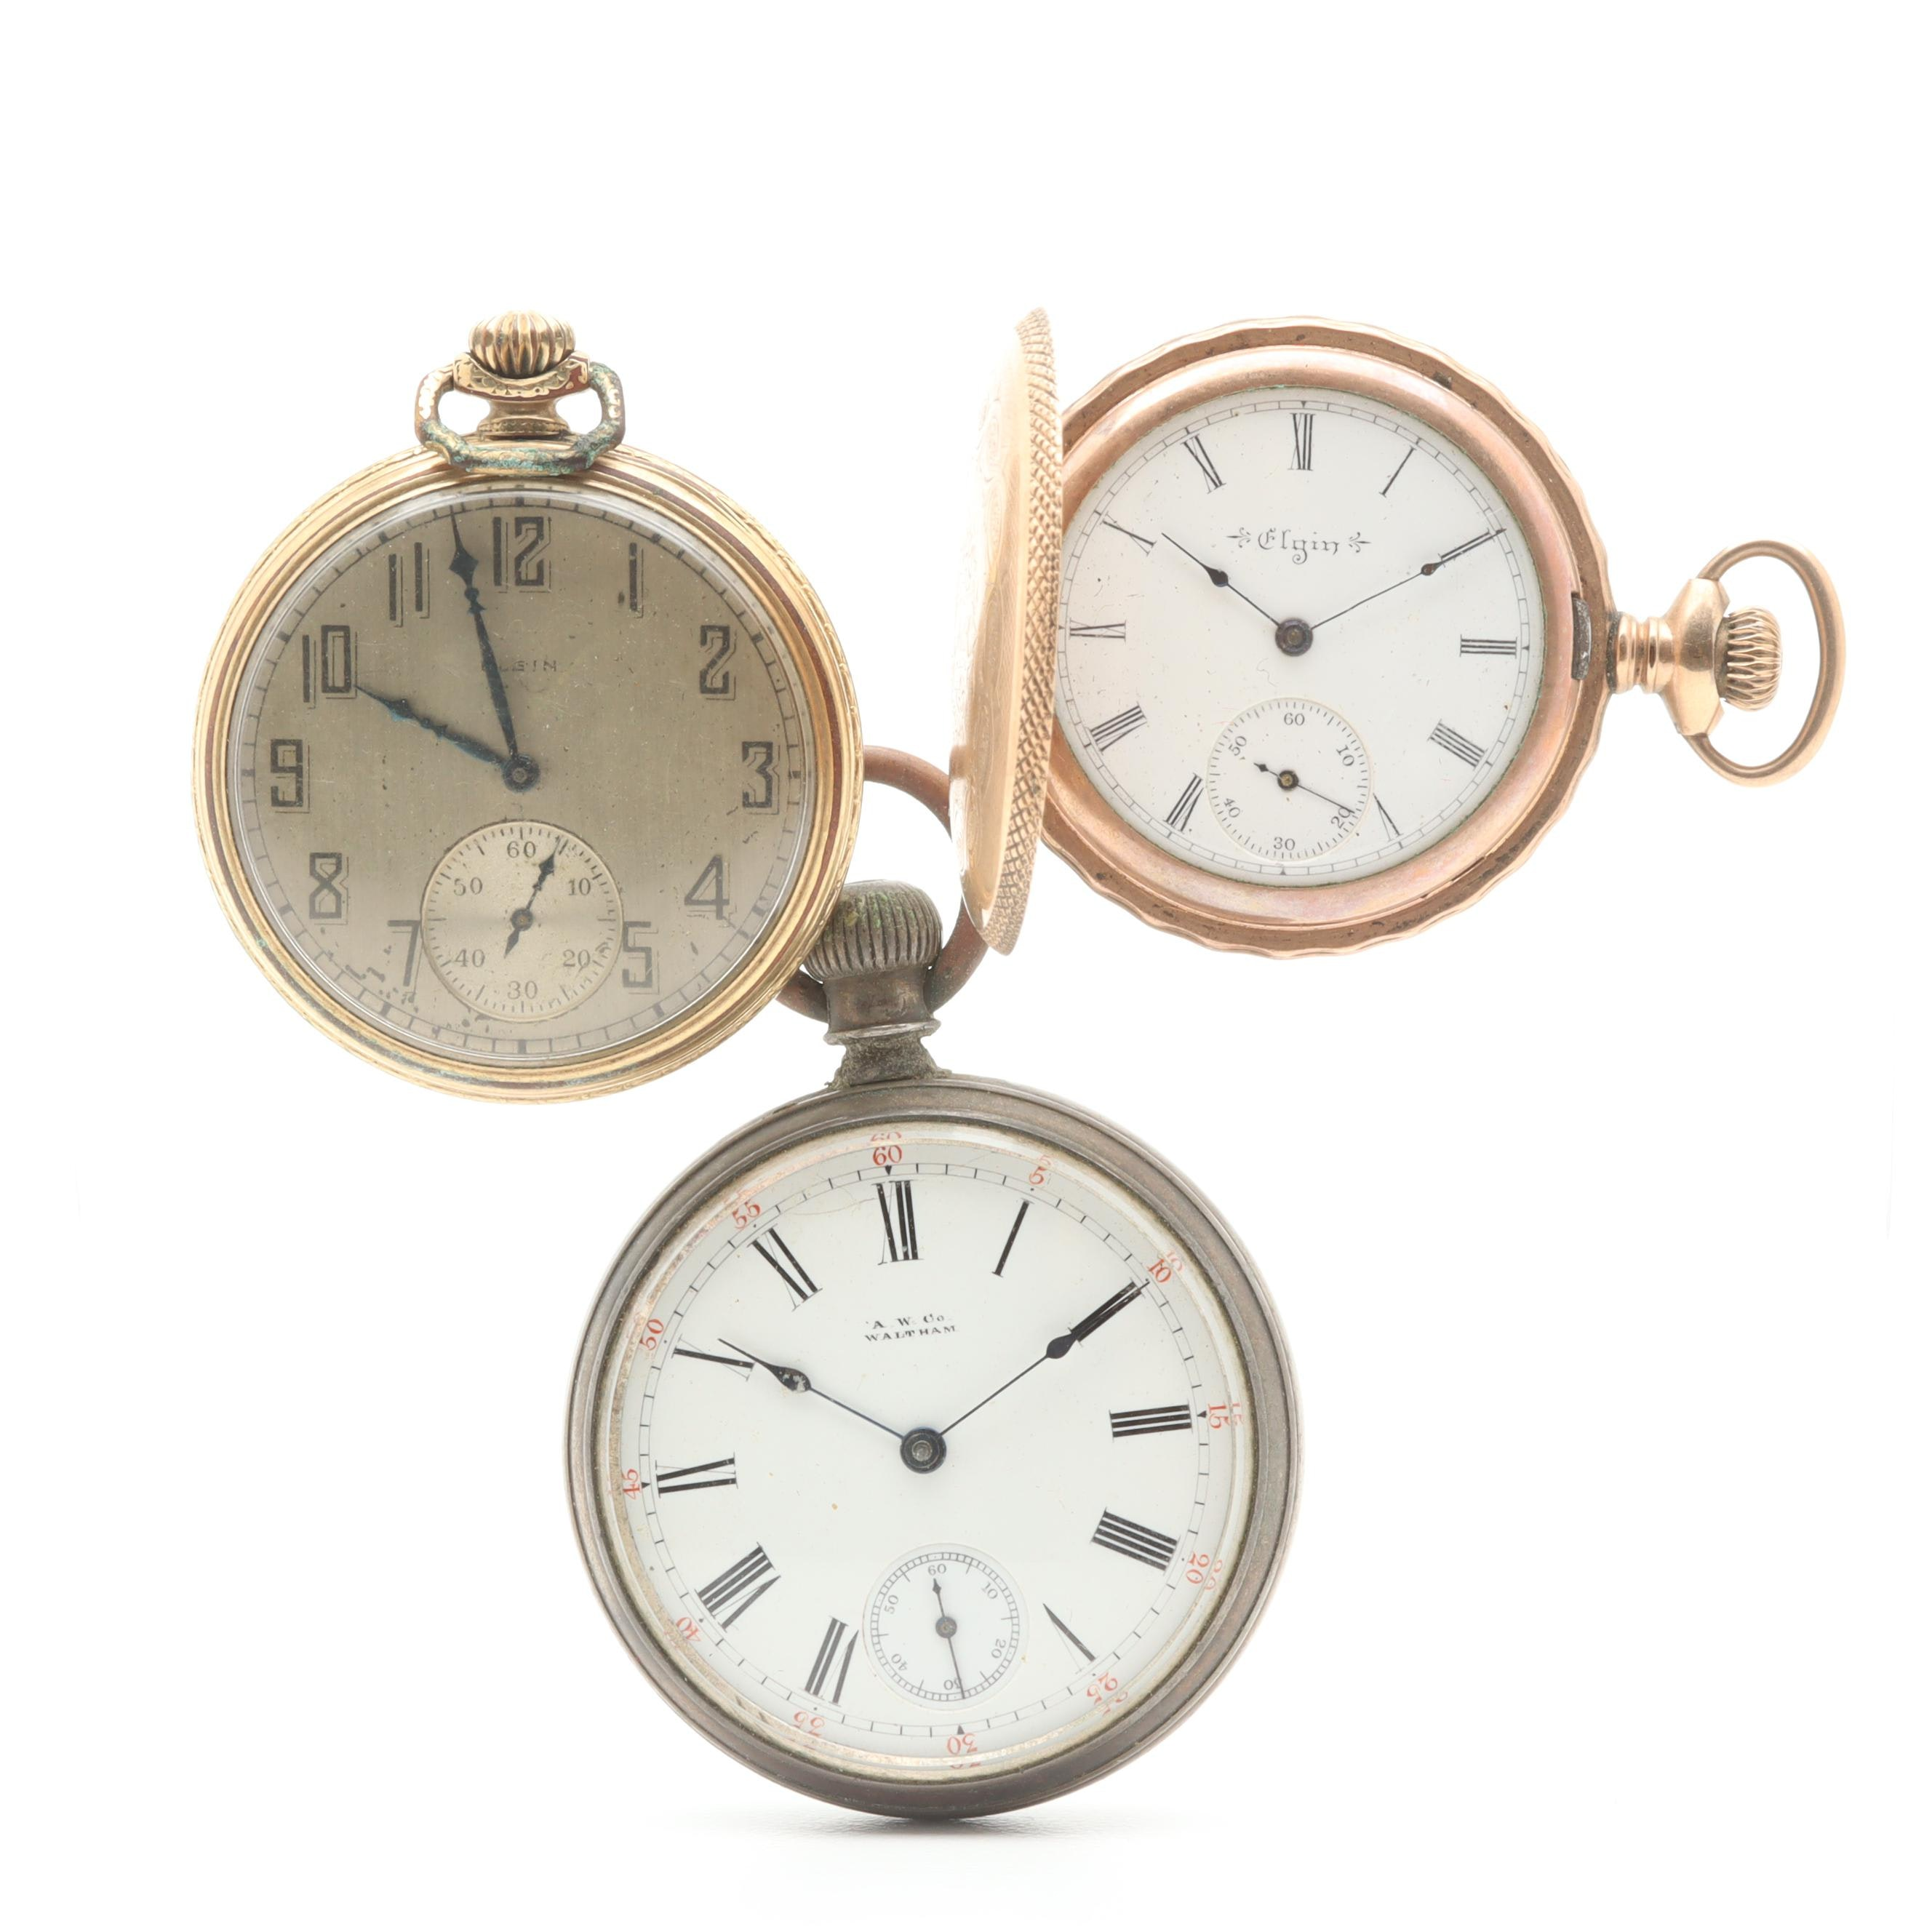 Gold-Tone Pocket Watch Assortment Including Elgin and Waltham